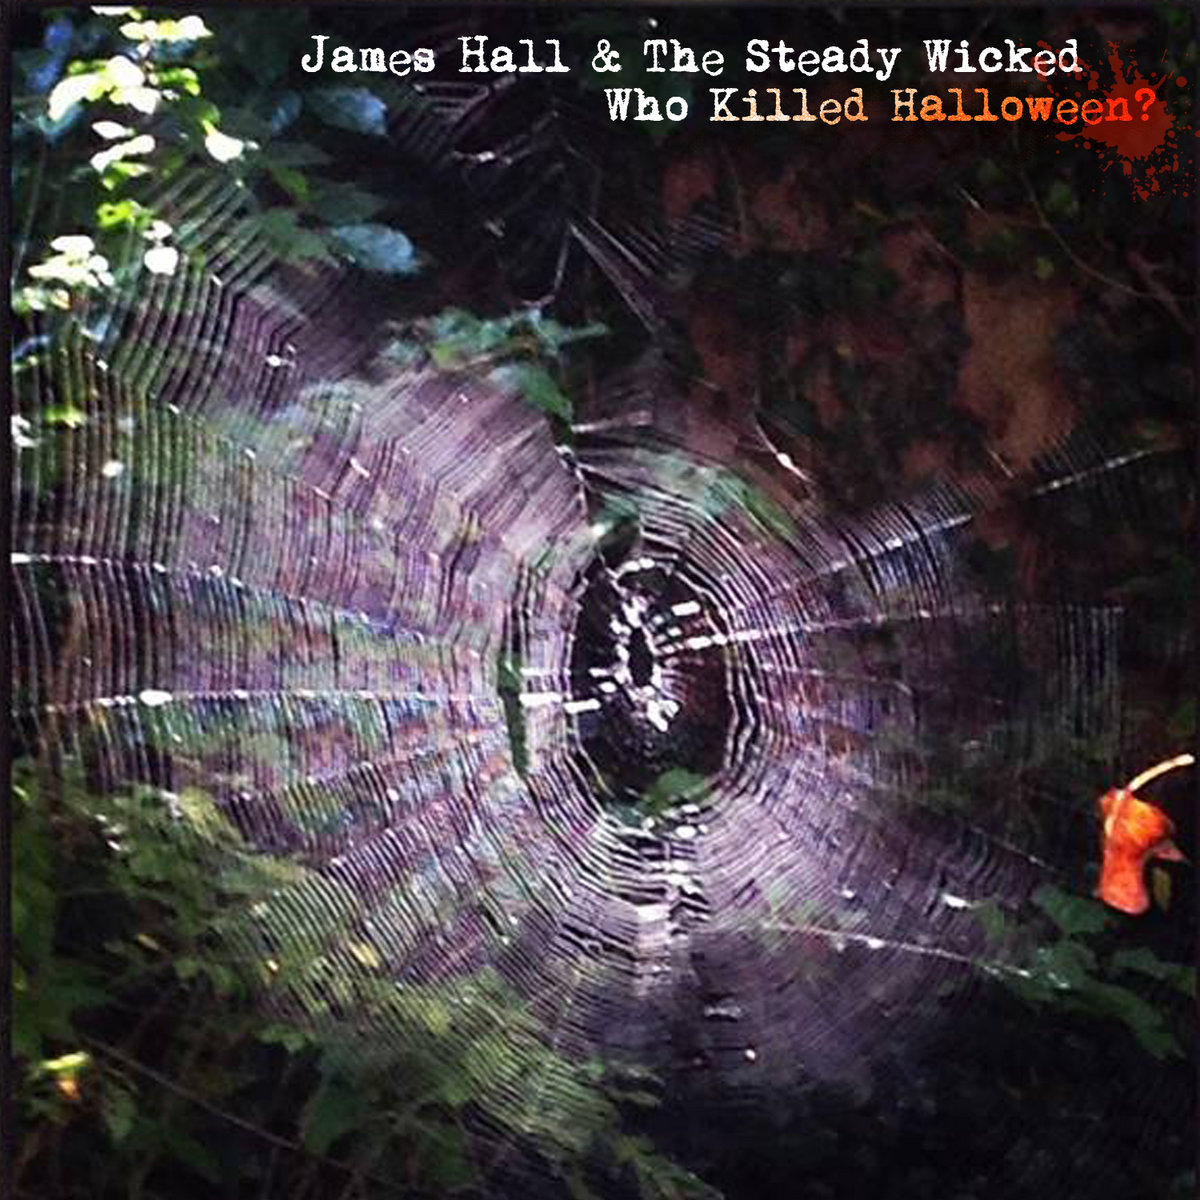 Who Killed Halloween? (Single) by James Hall & The Steady Wicked